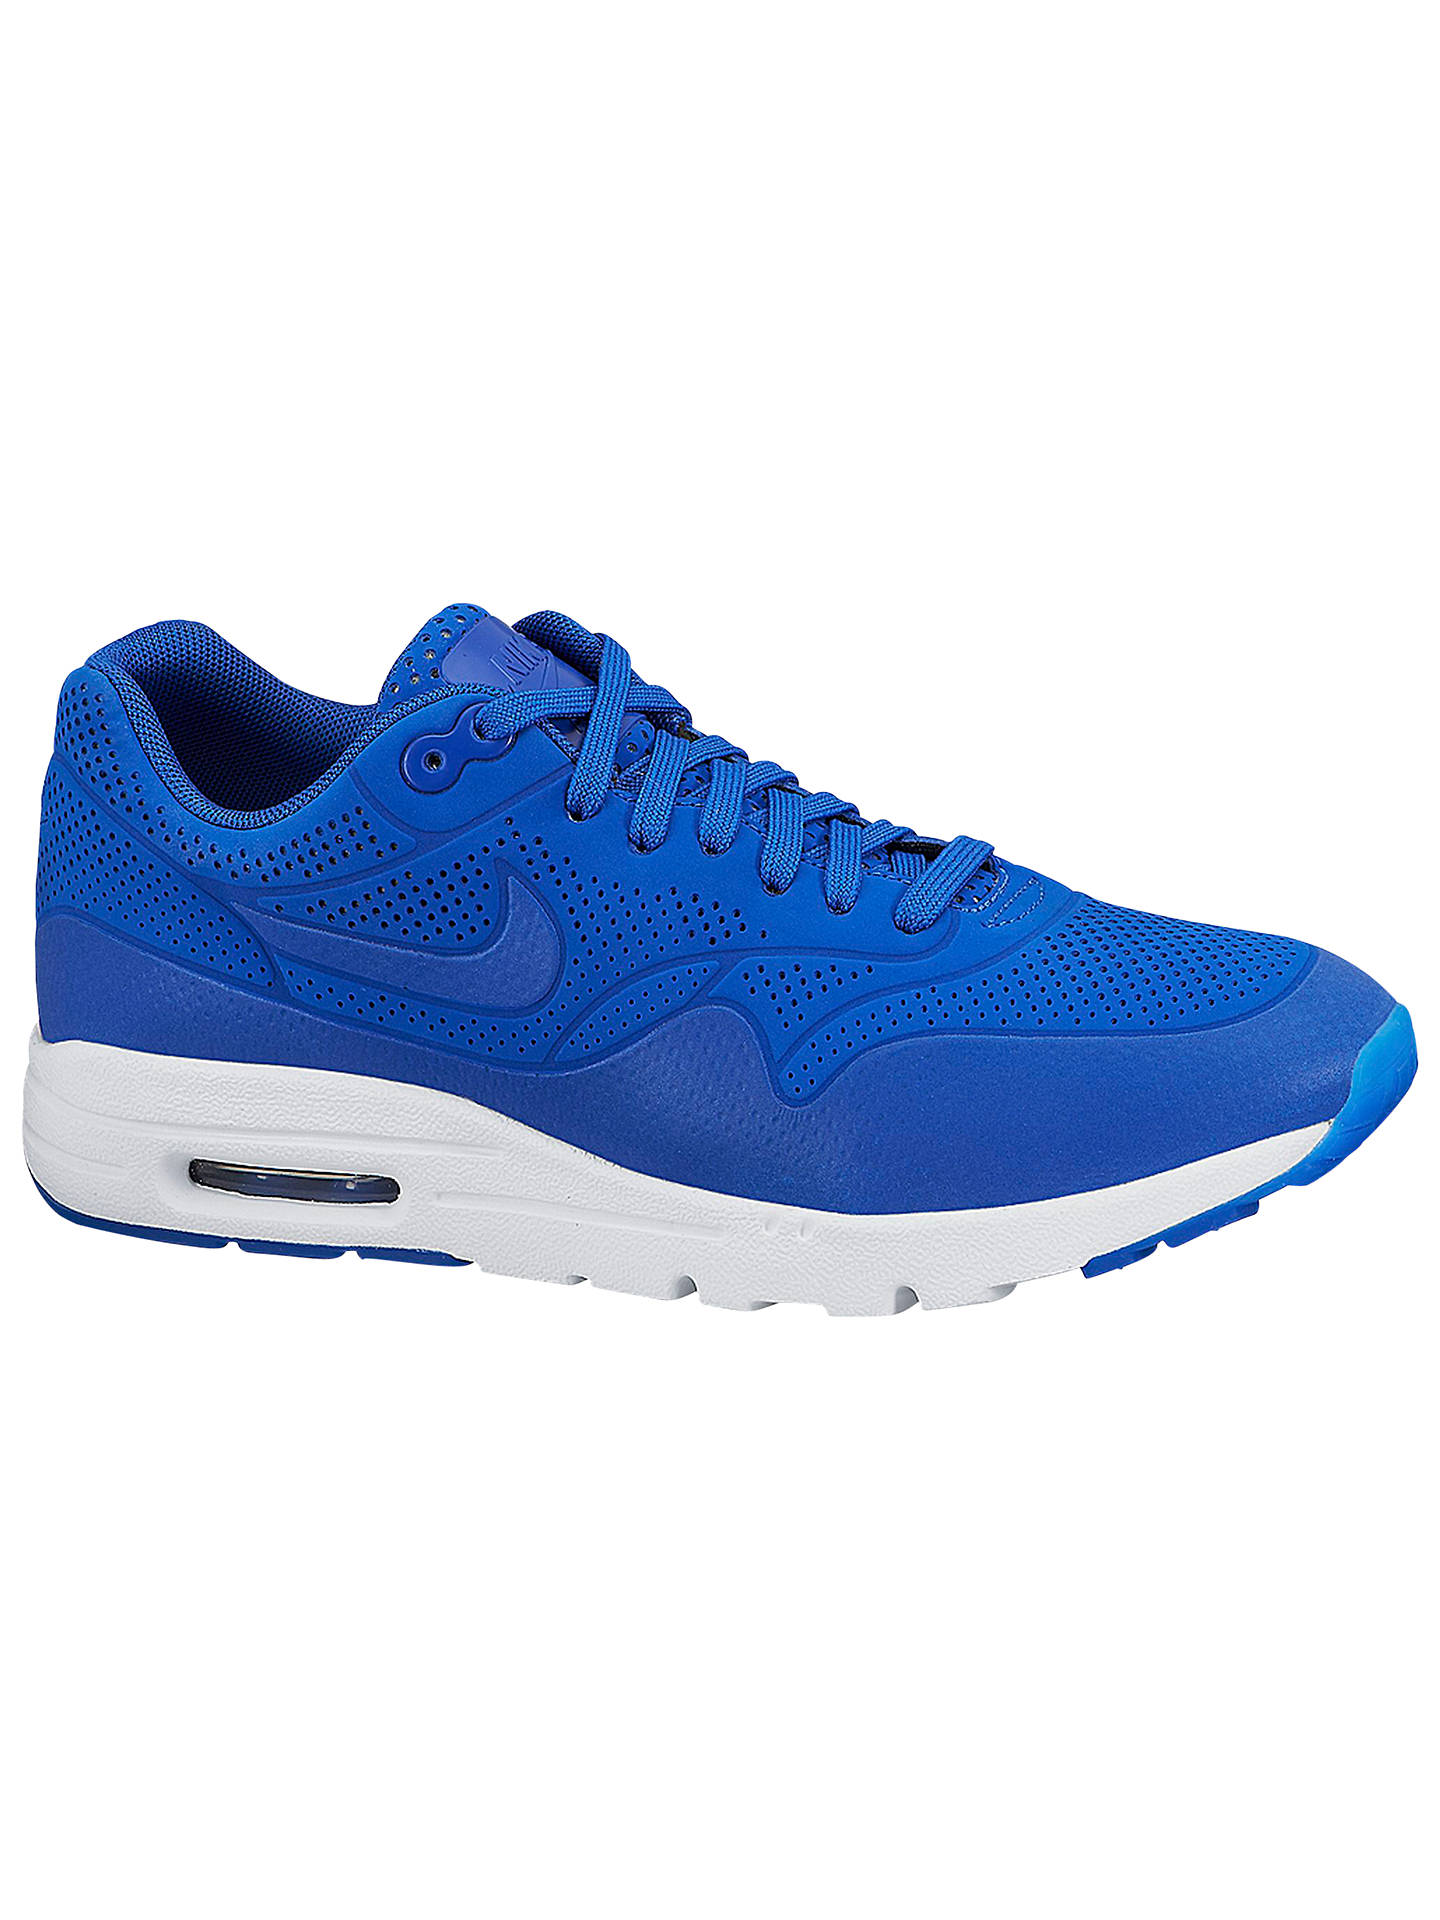 low priced 0da5a 11688 Buy Nike Air Max 1 Ultra Moire Women s Cross Trainers, Game Royal White, ...